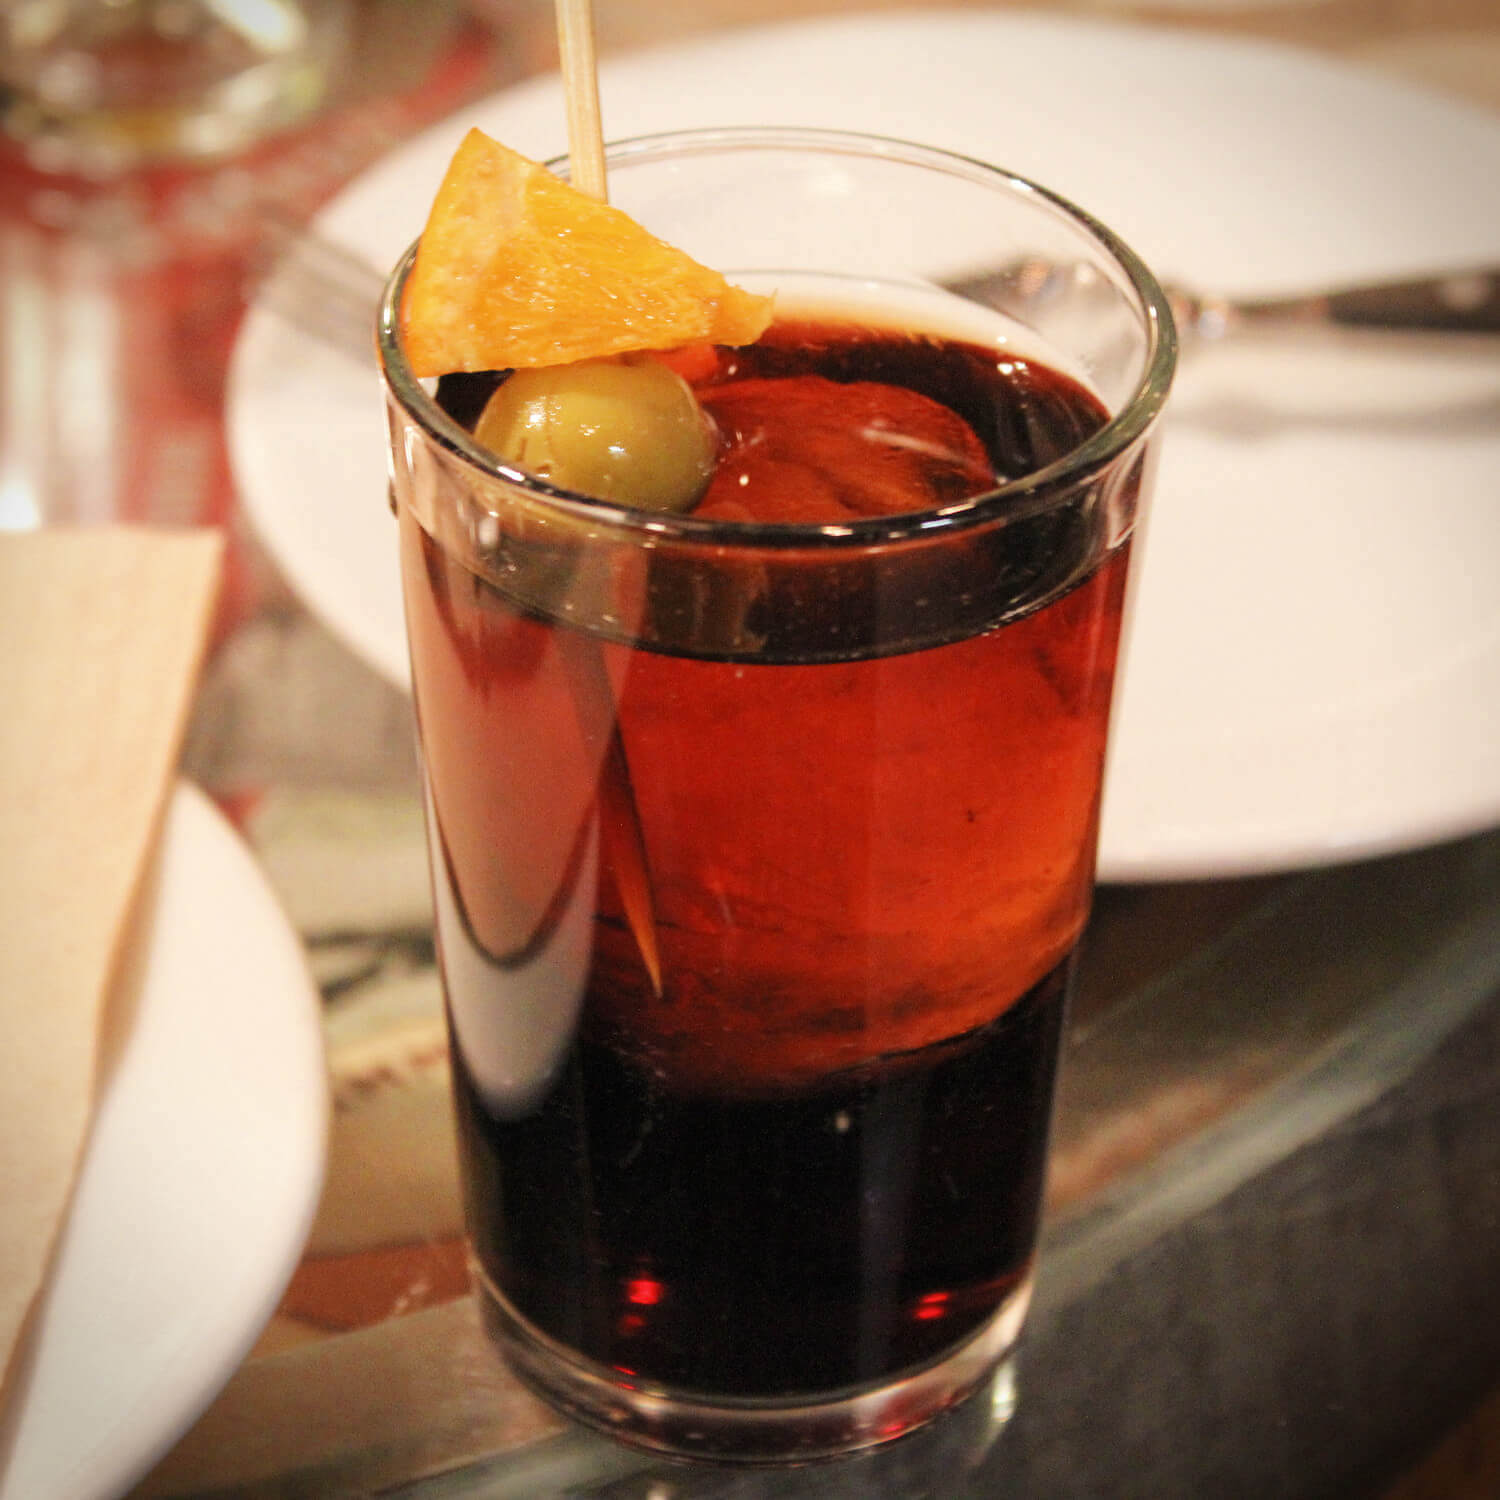 Delicious sweet Vermouth is traditionally drunk straight in Spain, with a salty olive and an orange as garnish. We enjoyed this along with other Spanish wines on the Devour Barcelona wine tasting and tapas food tour!